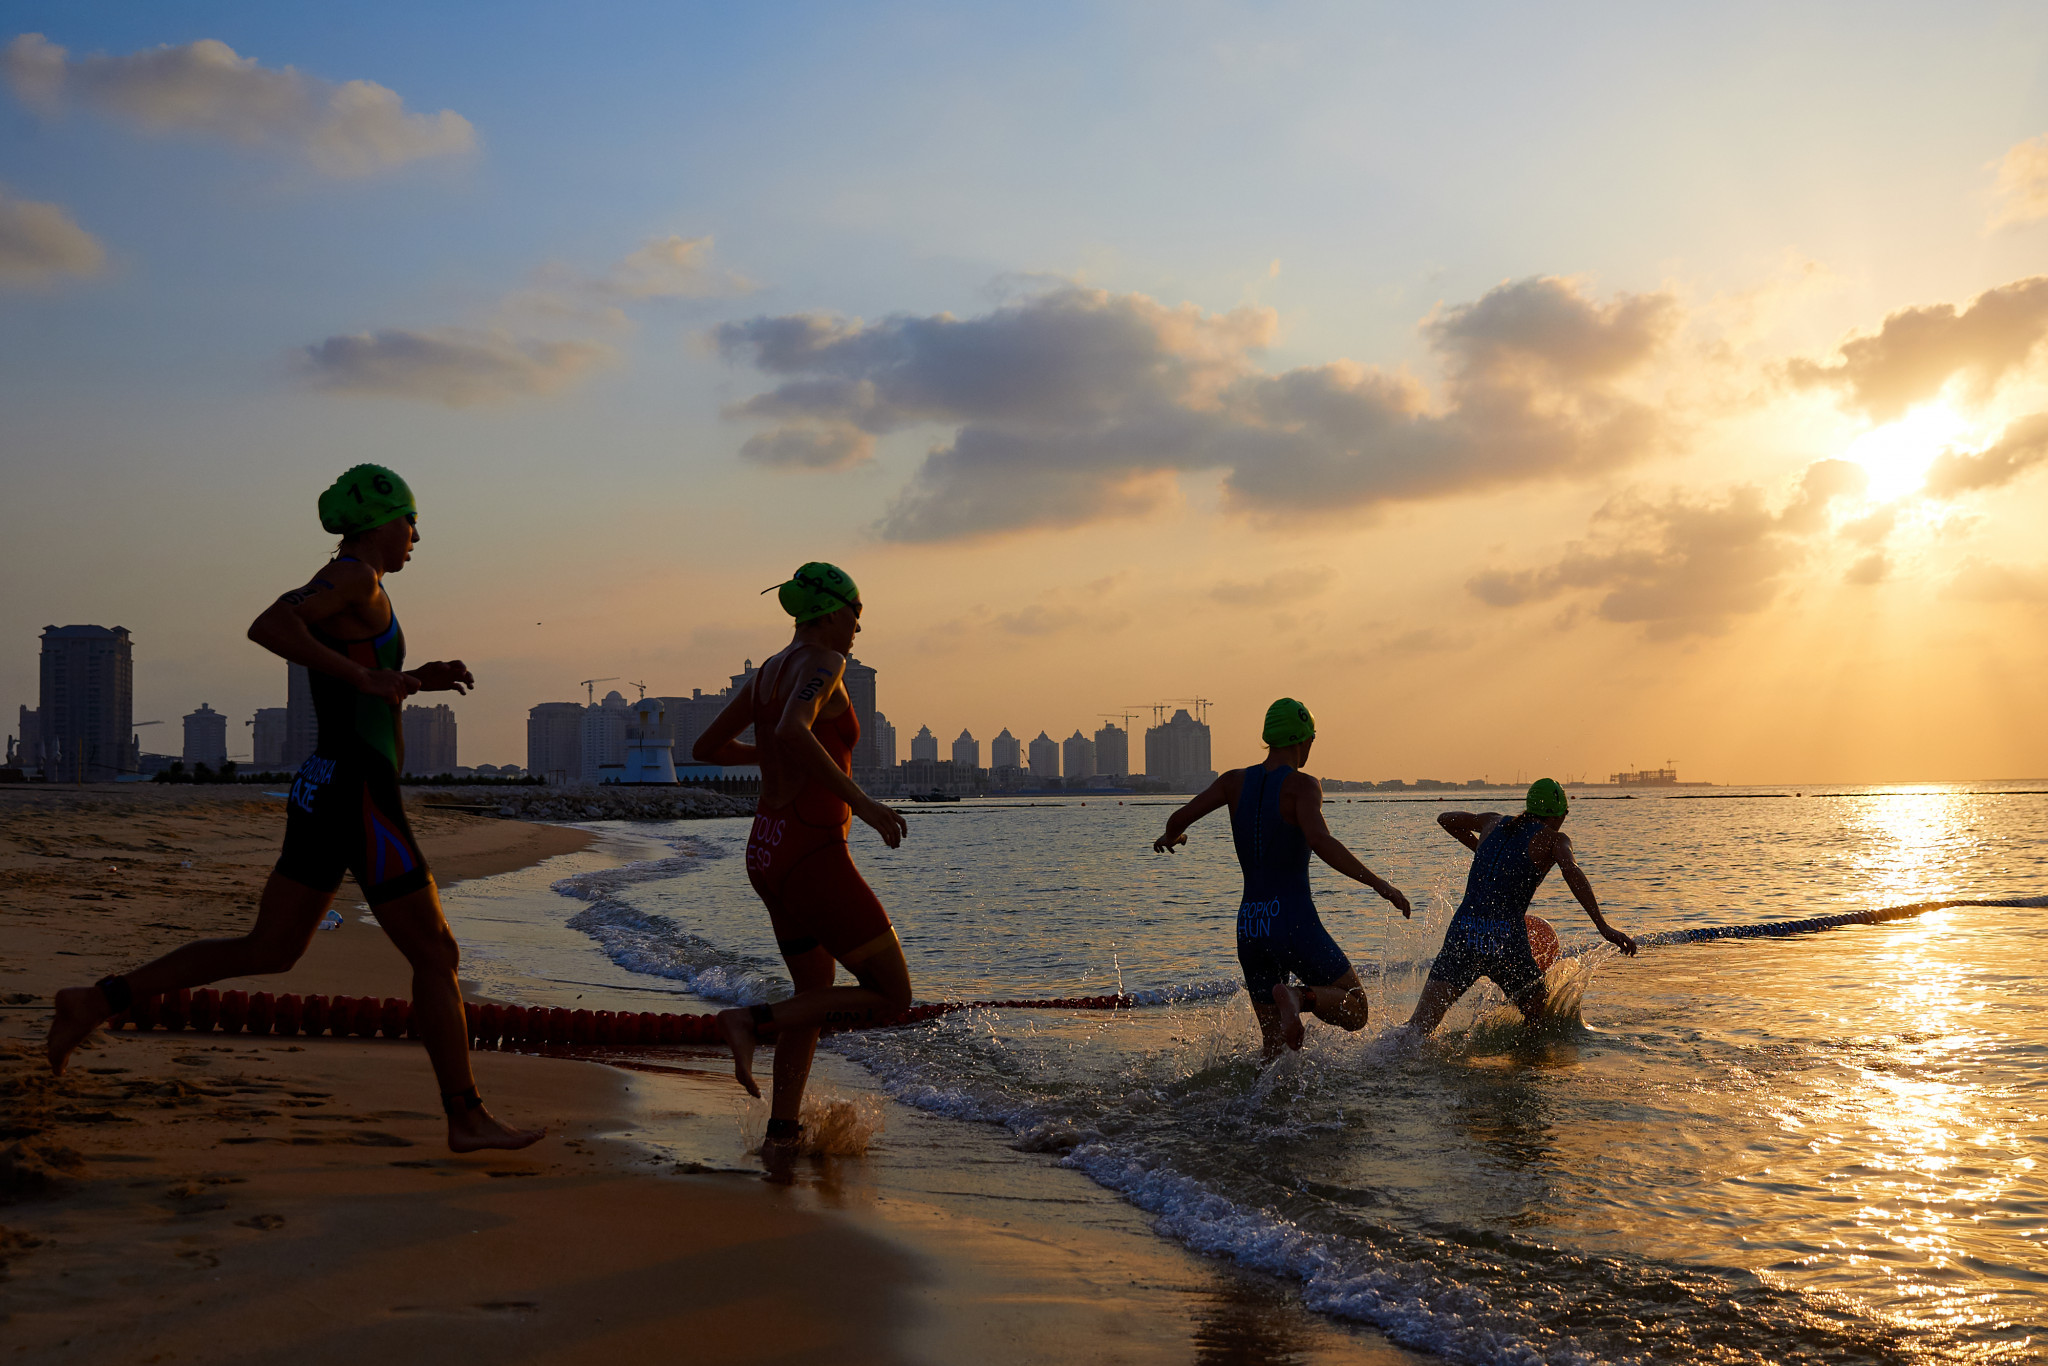 There was an early start for the men's and women's aquathlon races ©ANOC